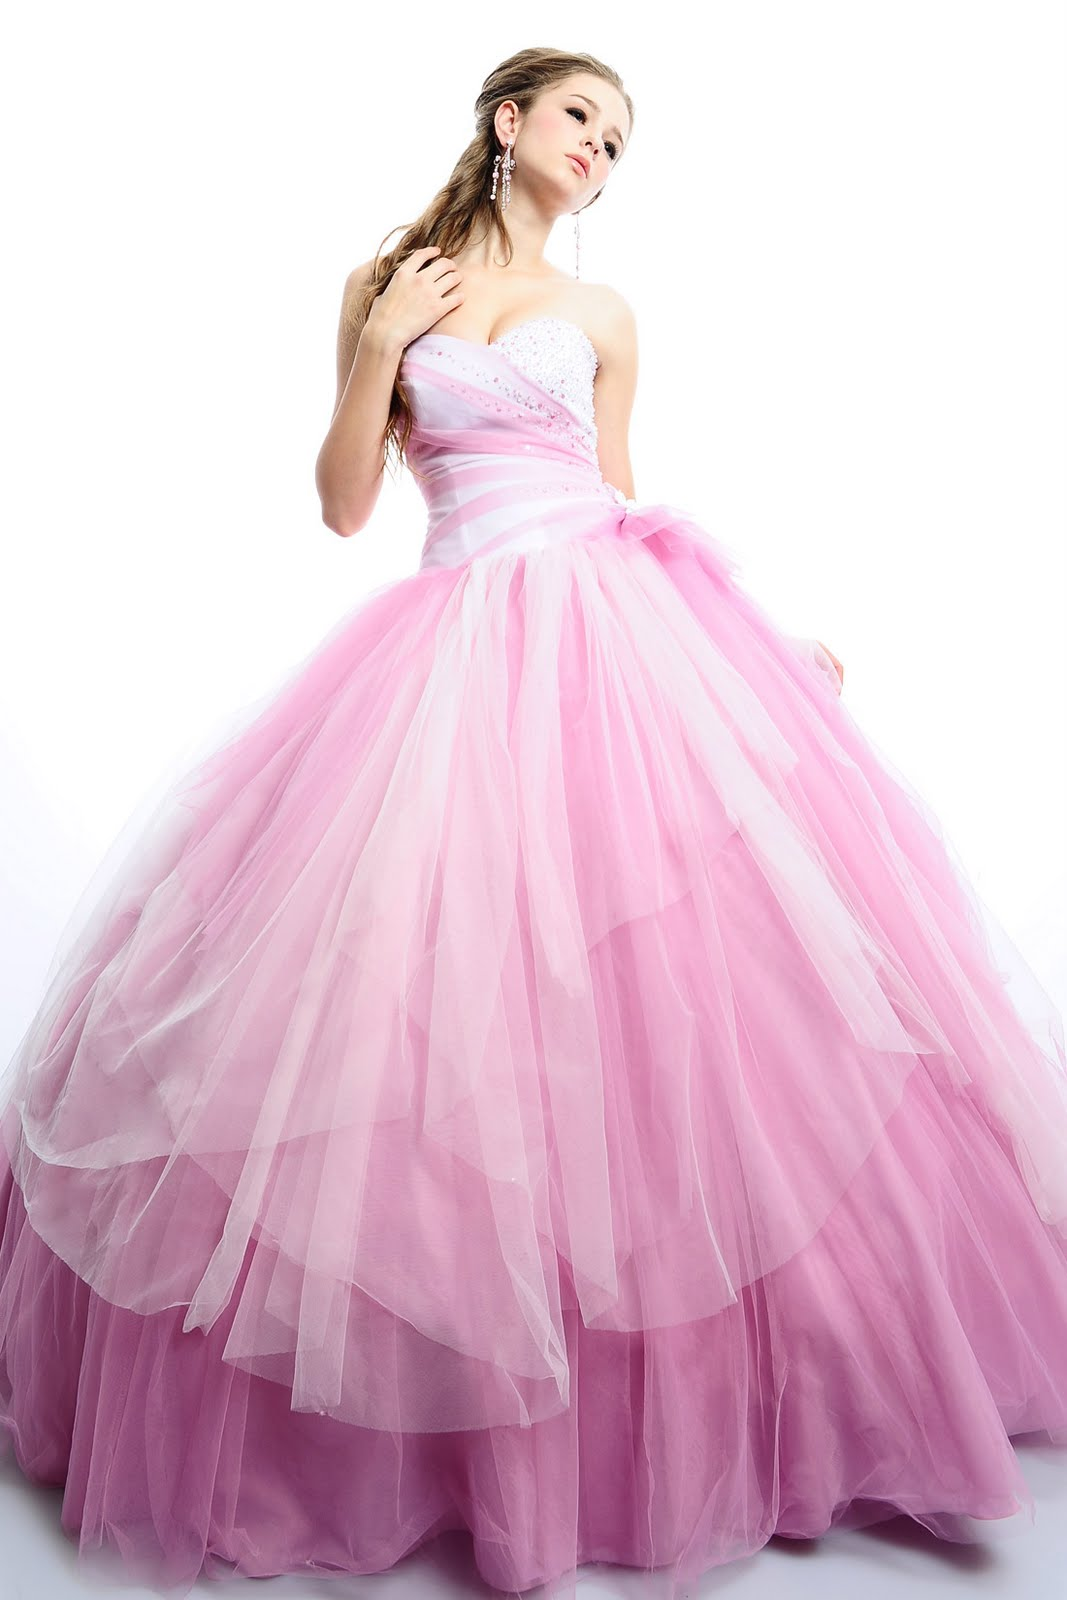 Dresses Prom Wedding Homecoming Quinceanera Cheap ...